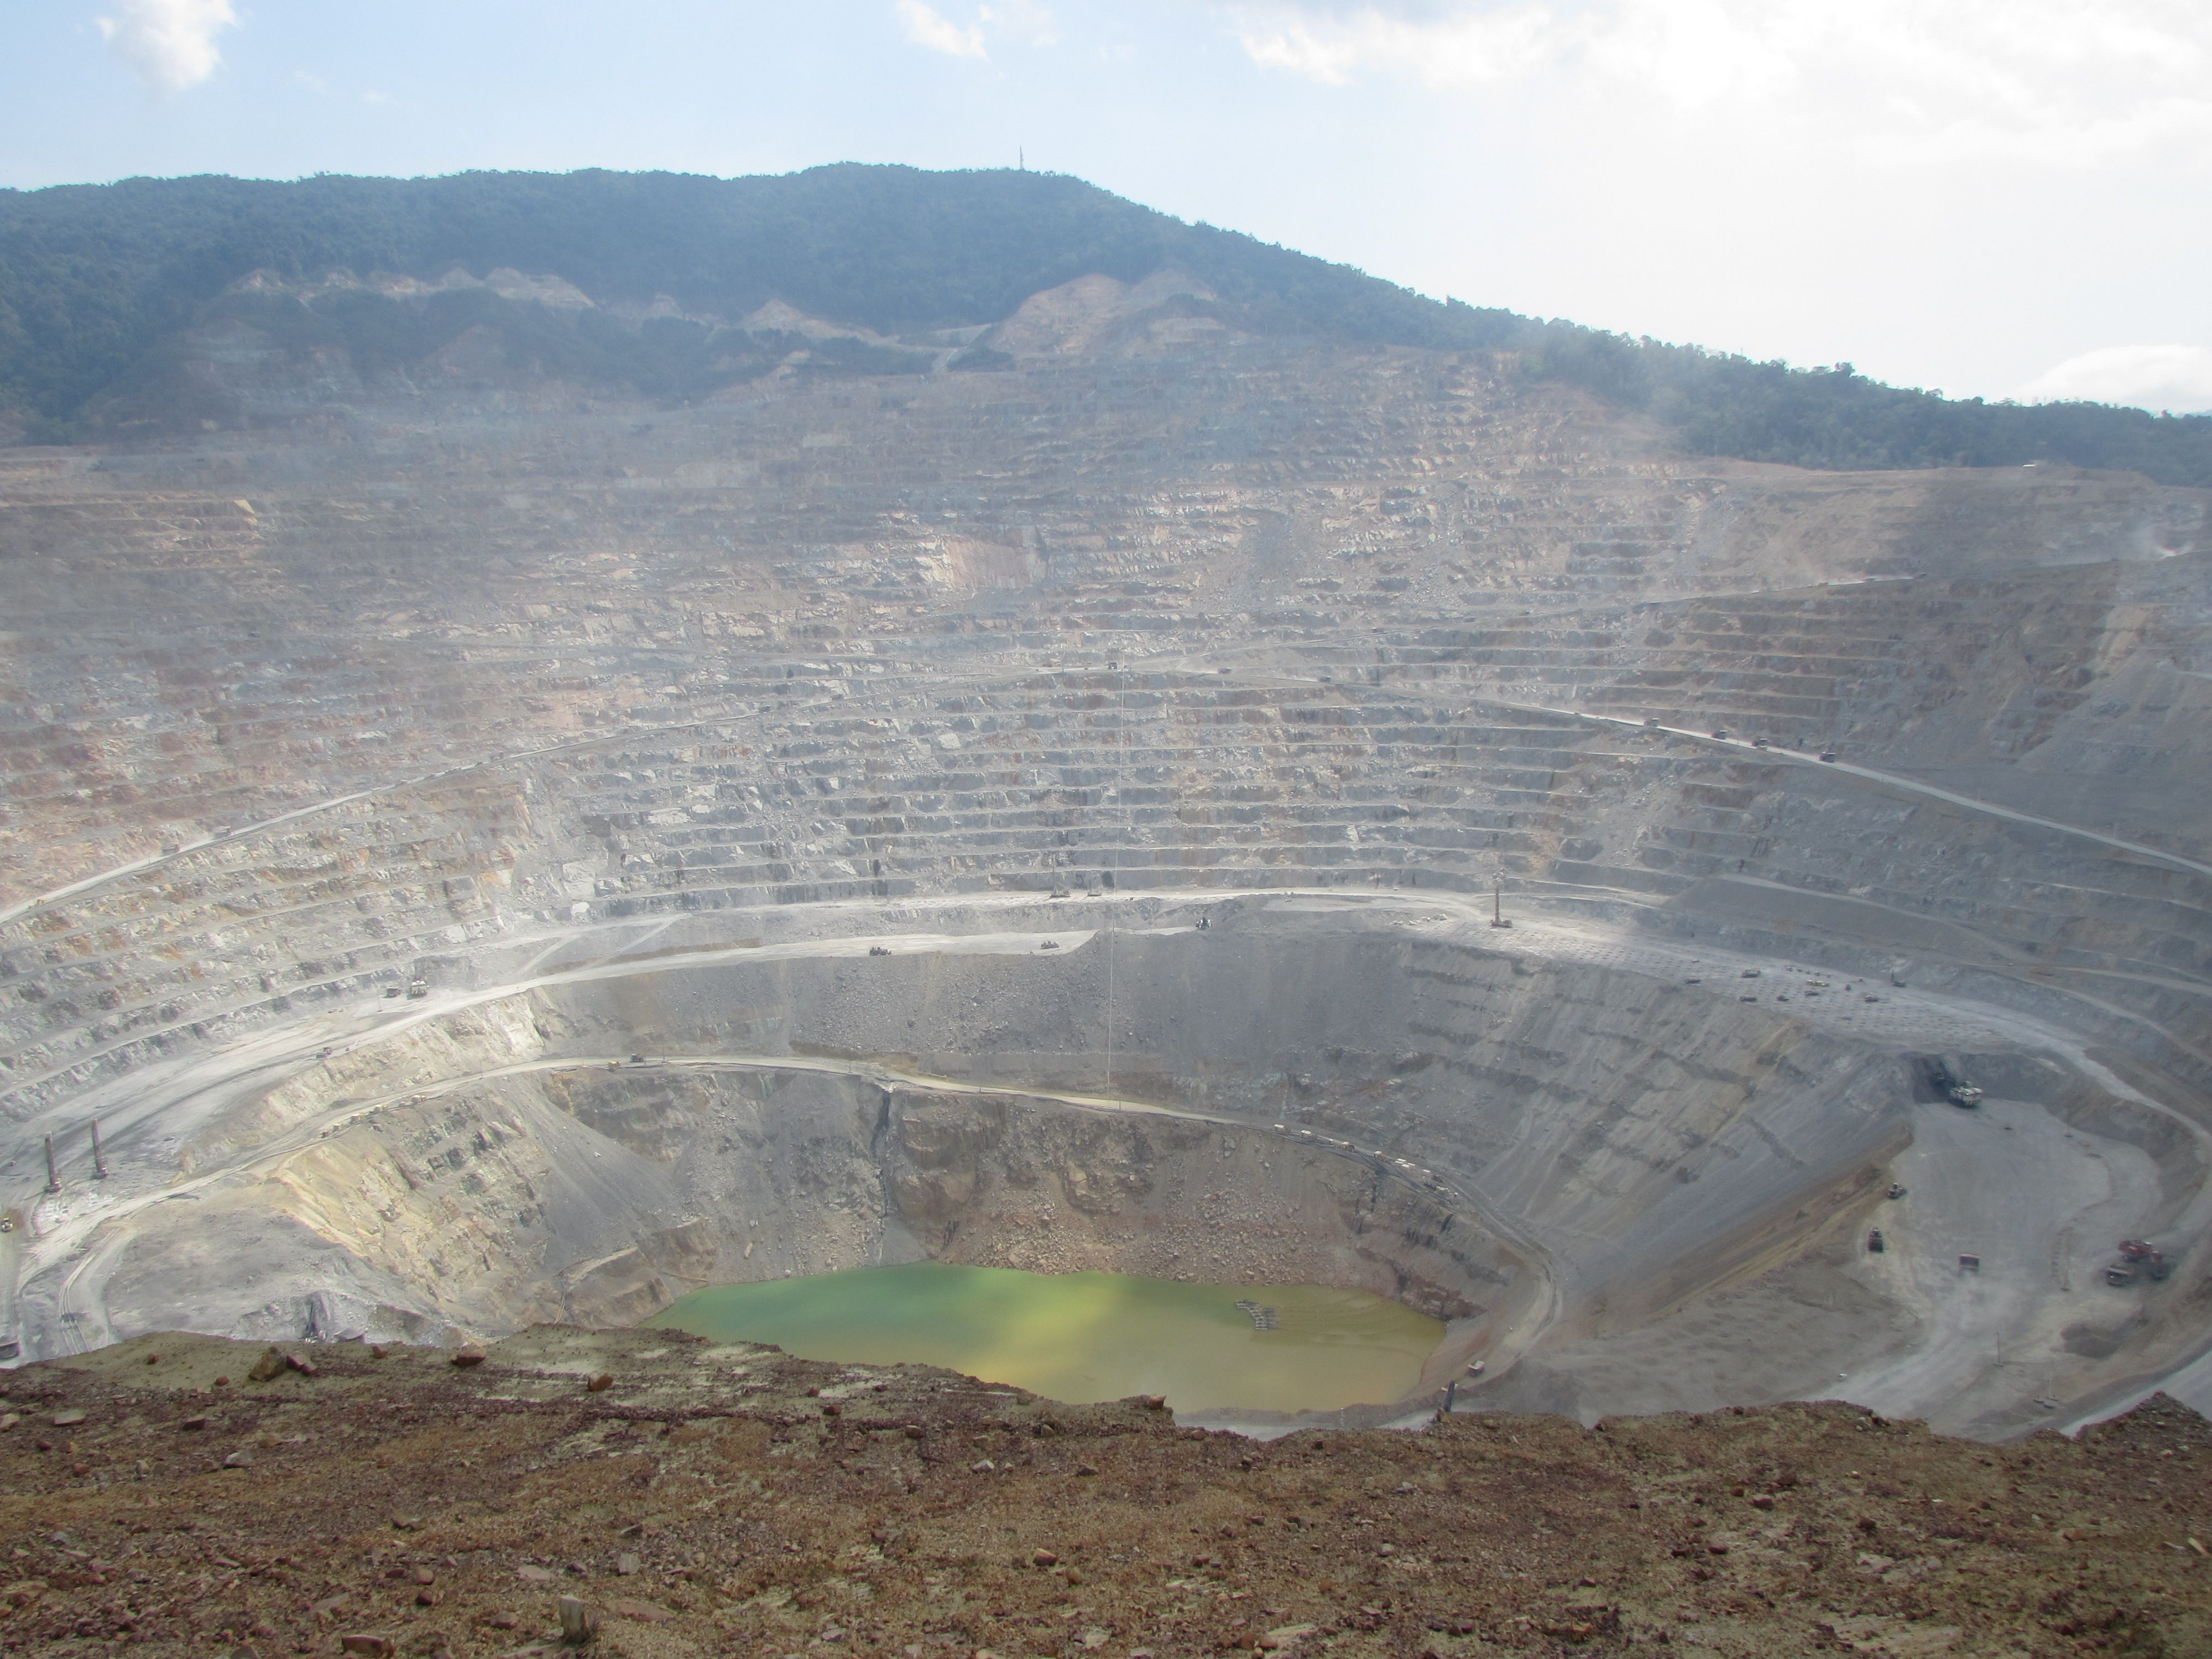 Read our interactive story: The Deadly Mines of Indonesia